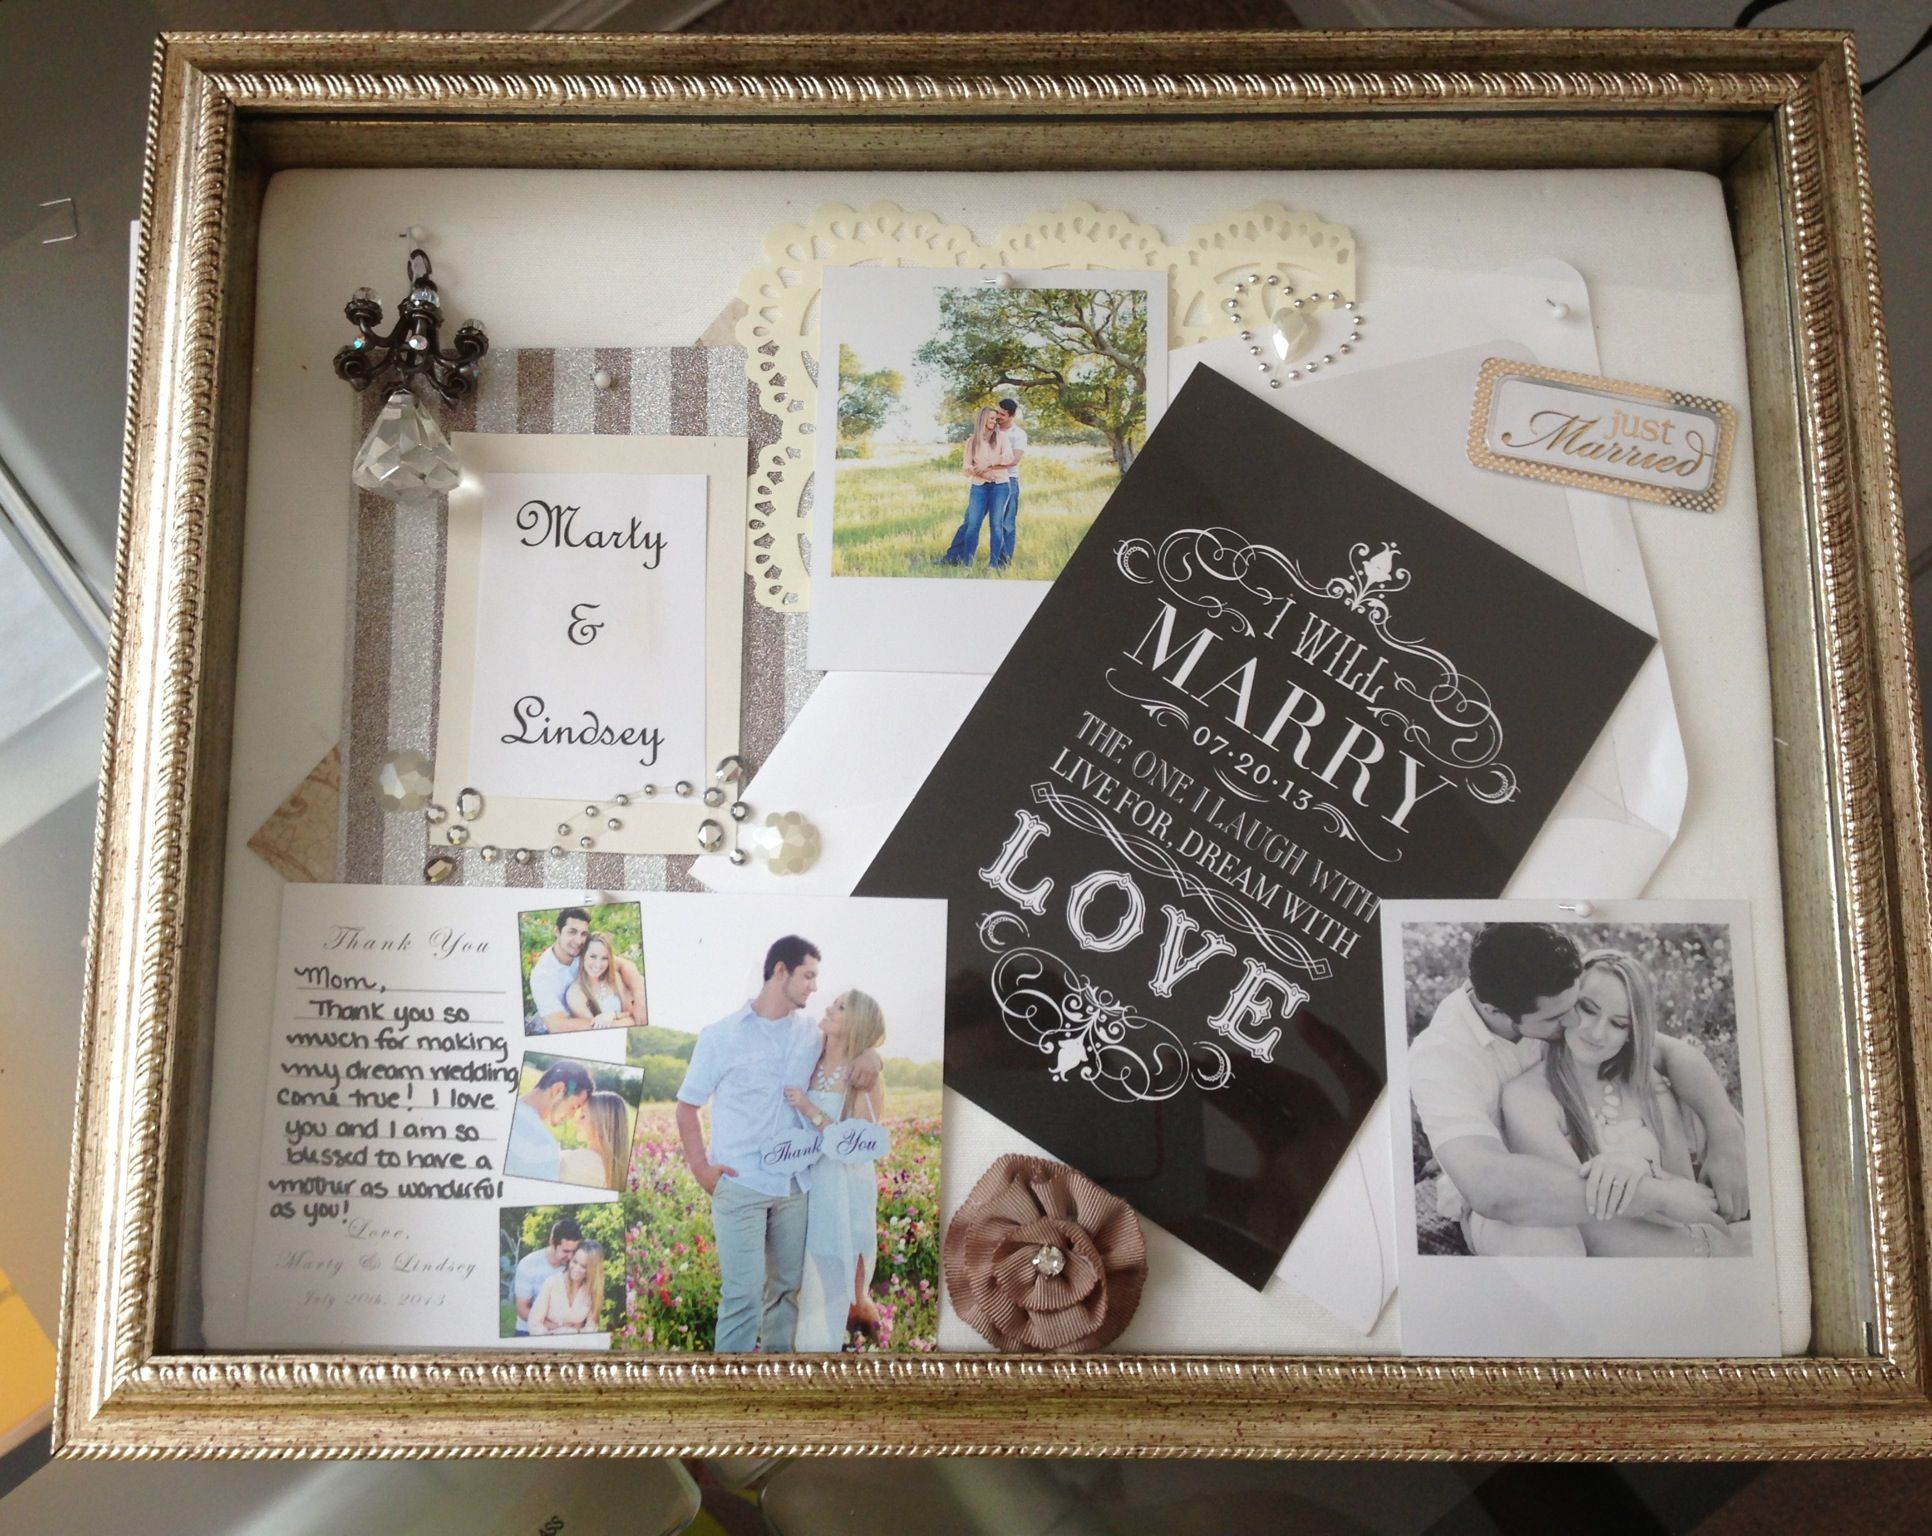 Wedding Gift Shadow Box Ideas www.galleryhip.com - The Hippest Pics